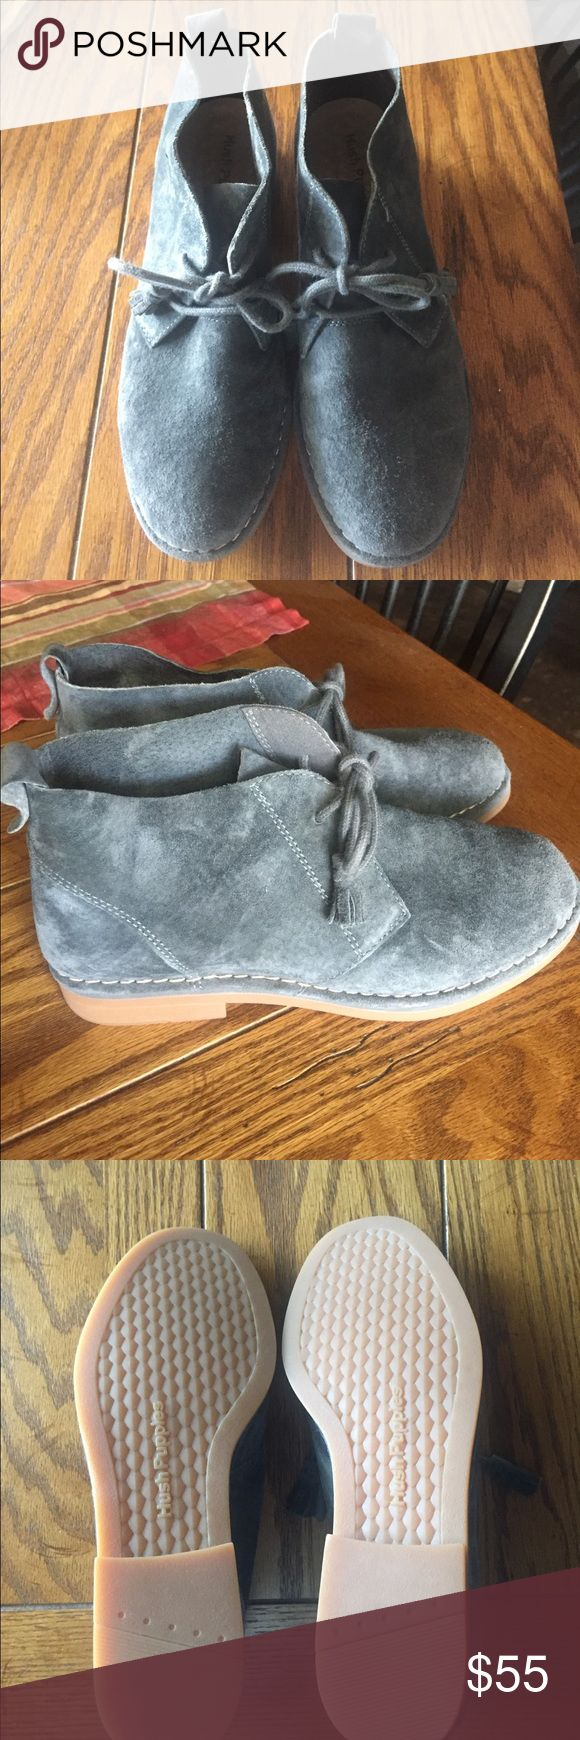 """Hush Puppies """"Cyra Catelyn"""" Chukka Boot Suede upper/leather and textile lining/rubber sole. Like new. Hush Puppies Shoes Ankle Boots & Booties"""